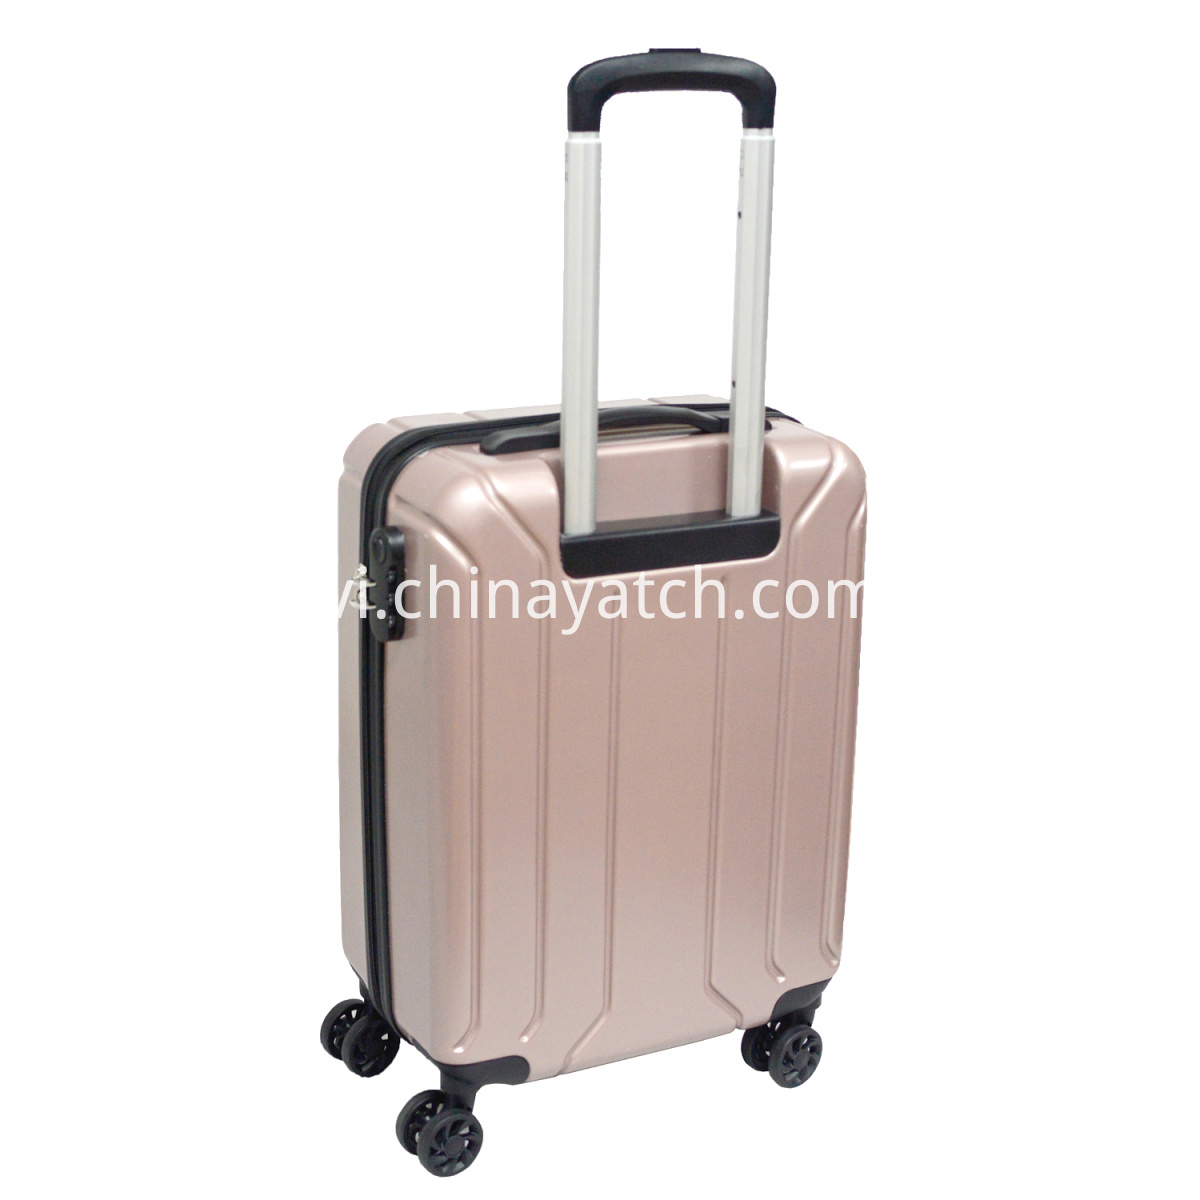 hardshell luggage